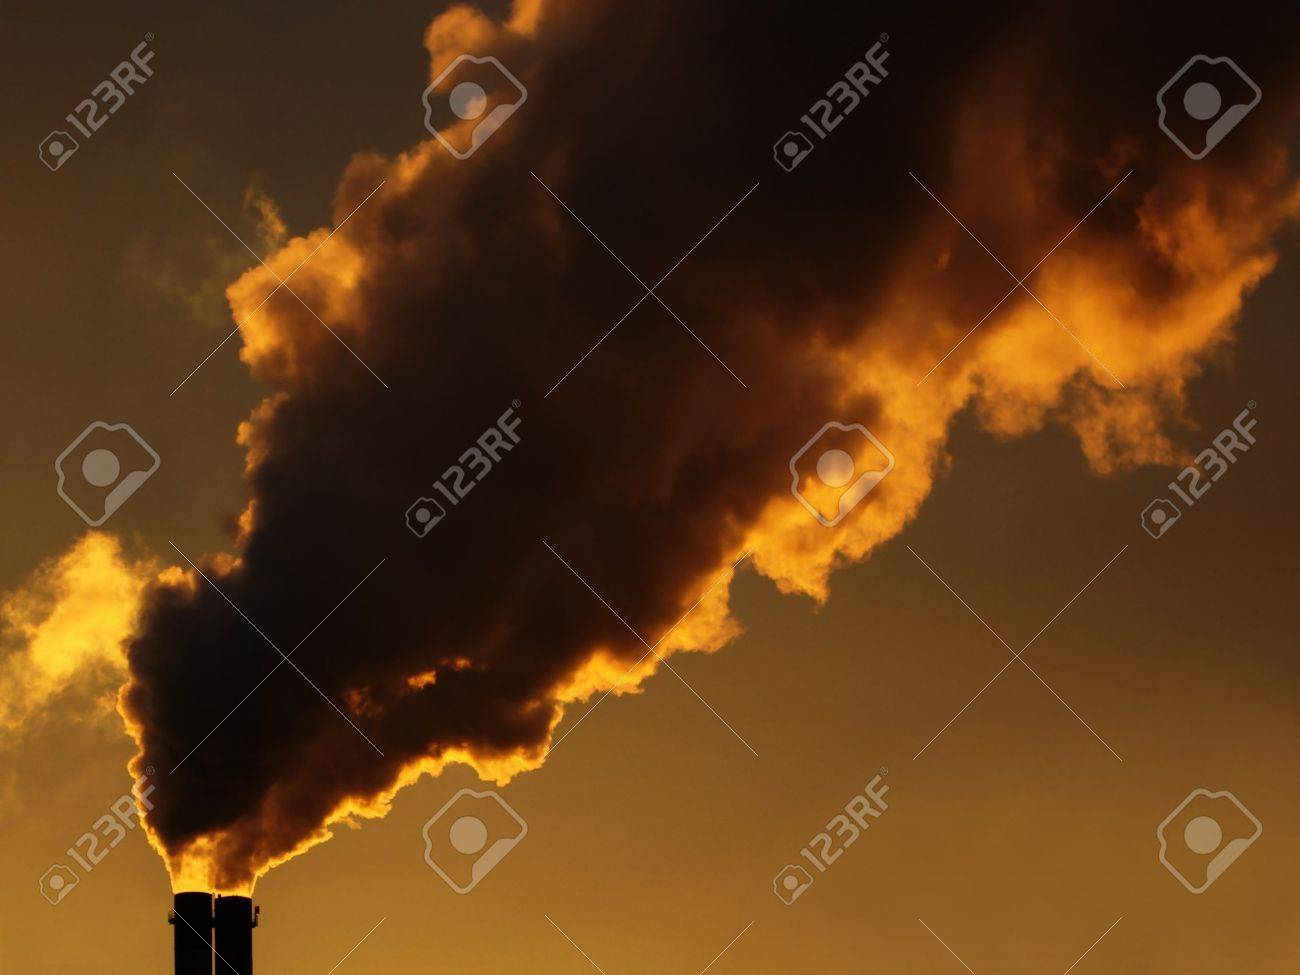 Dirty air pollution with a sunset on the background Stock Photo - 5105196